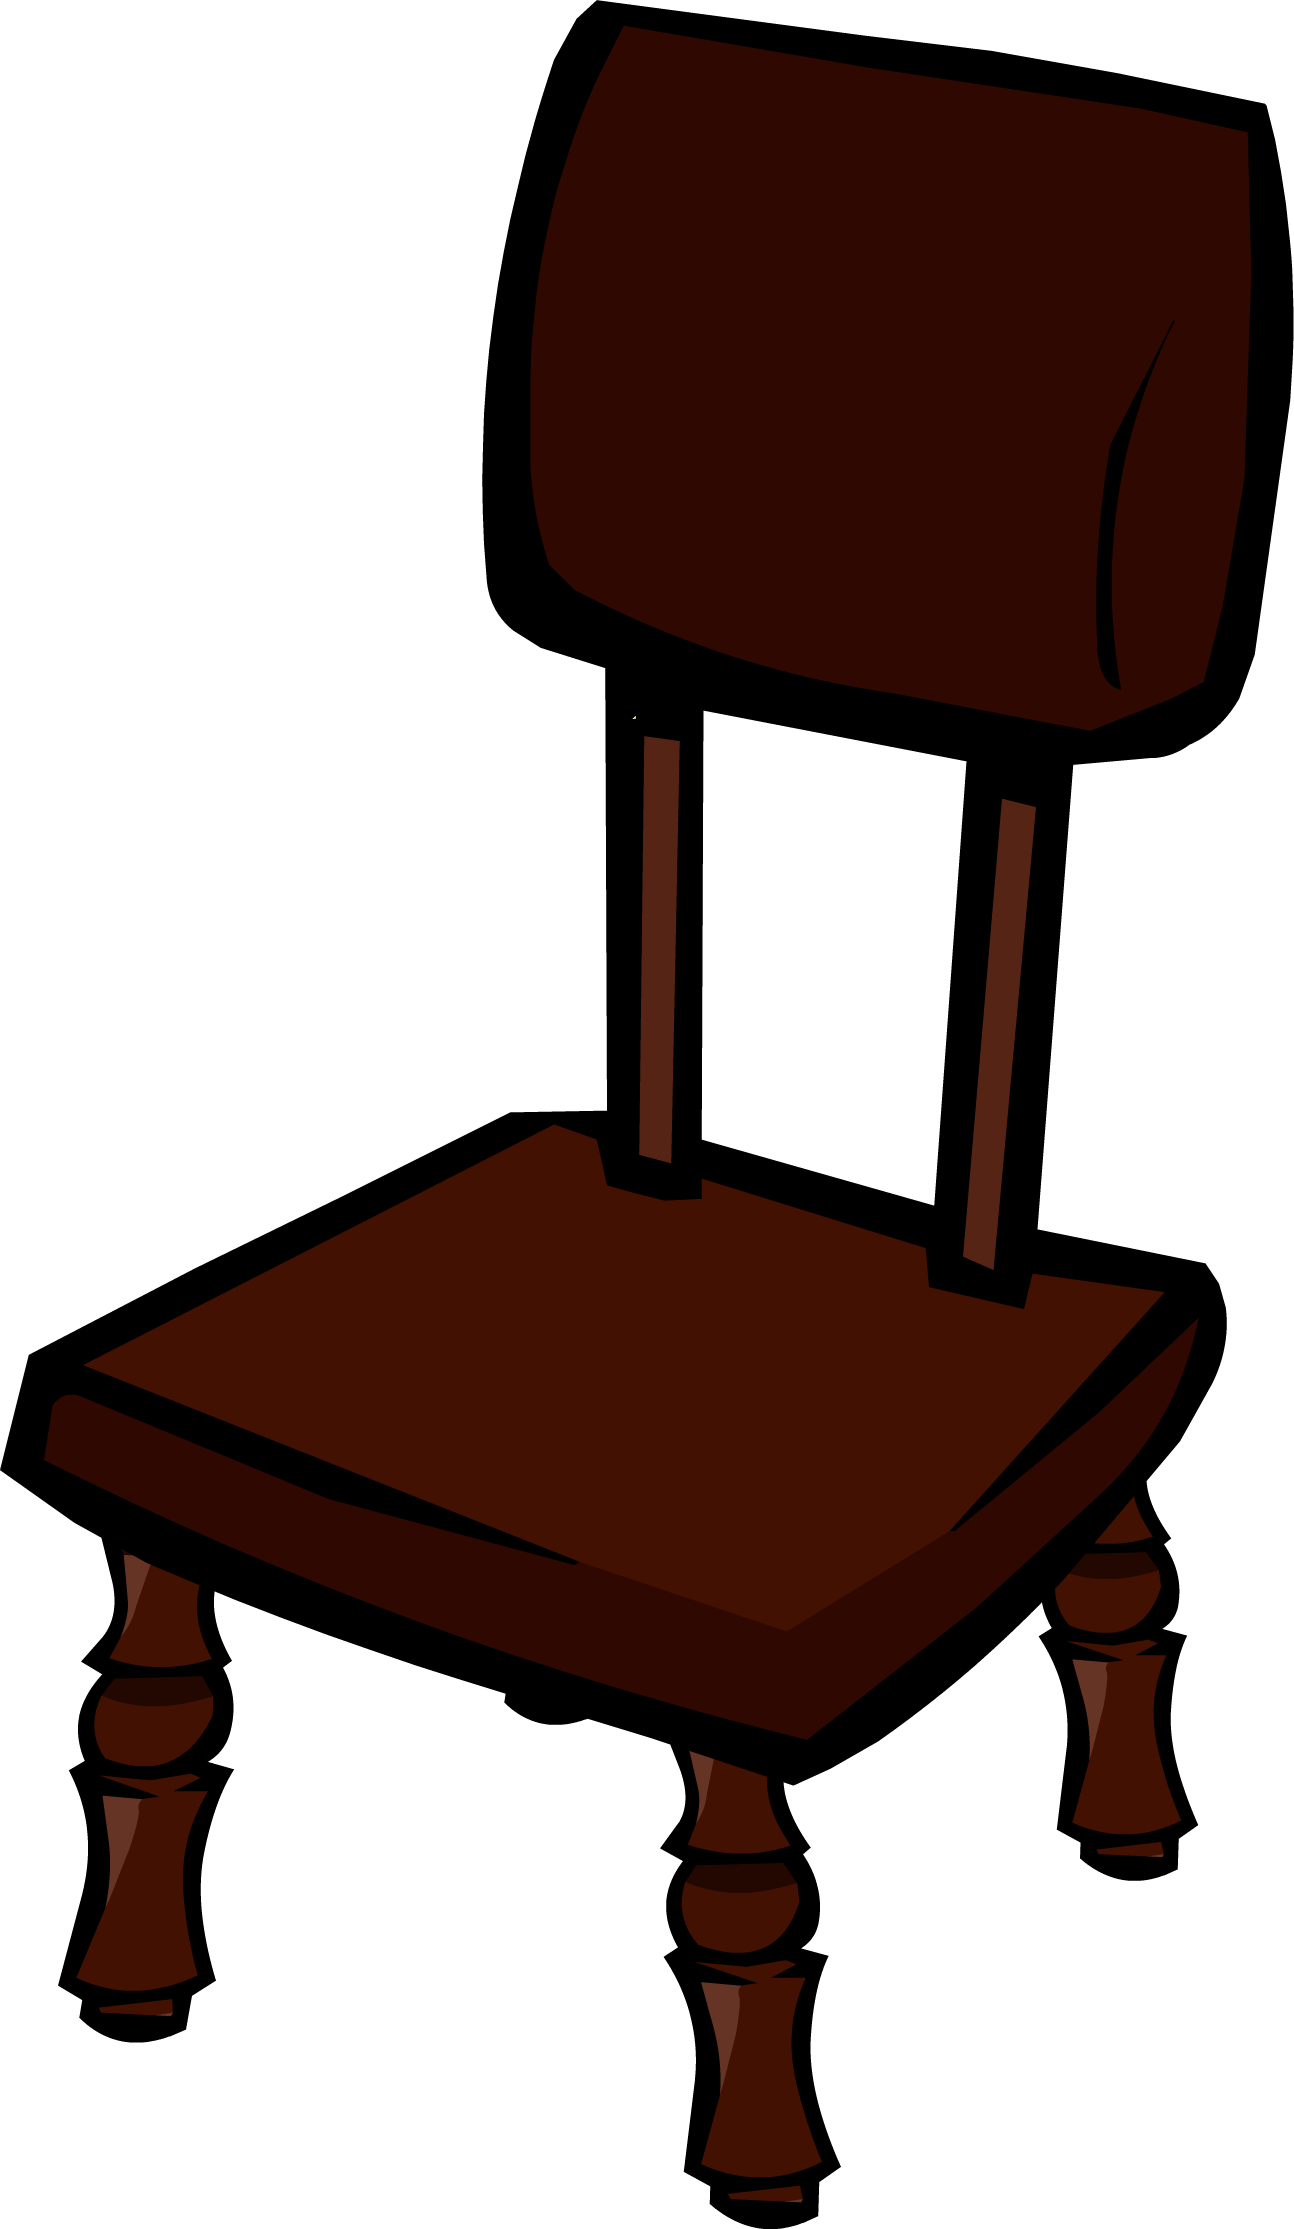 Clipart table wooden table, Clipart table wooden table.